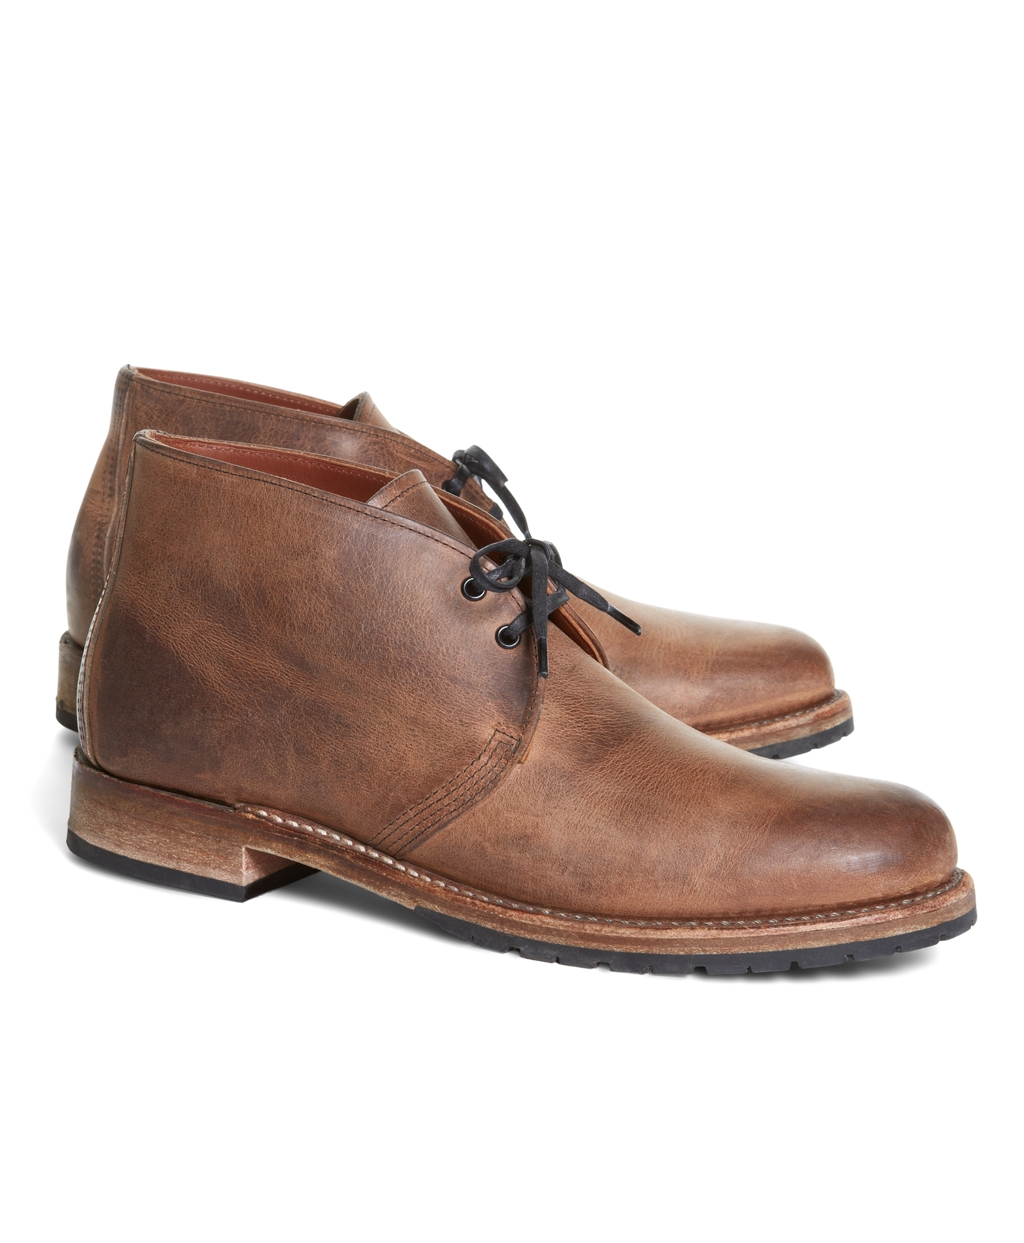 07b7f8c4498 Lyst - Brooks Brothers Red Wing Vintage Beckham Chukka Boots in ...